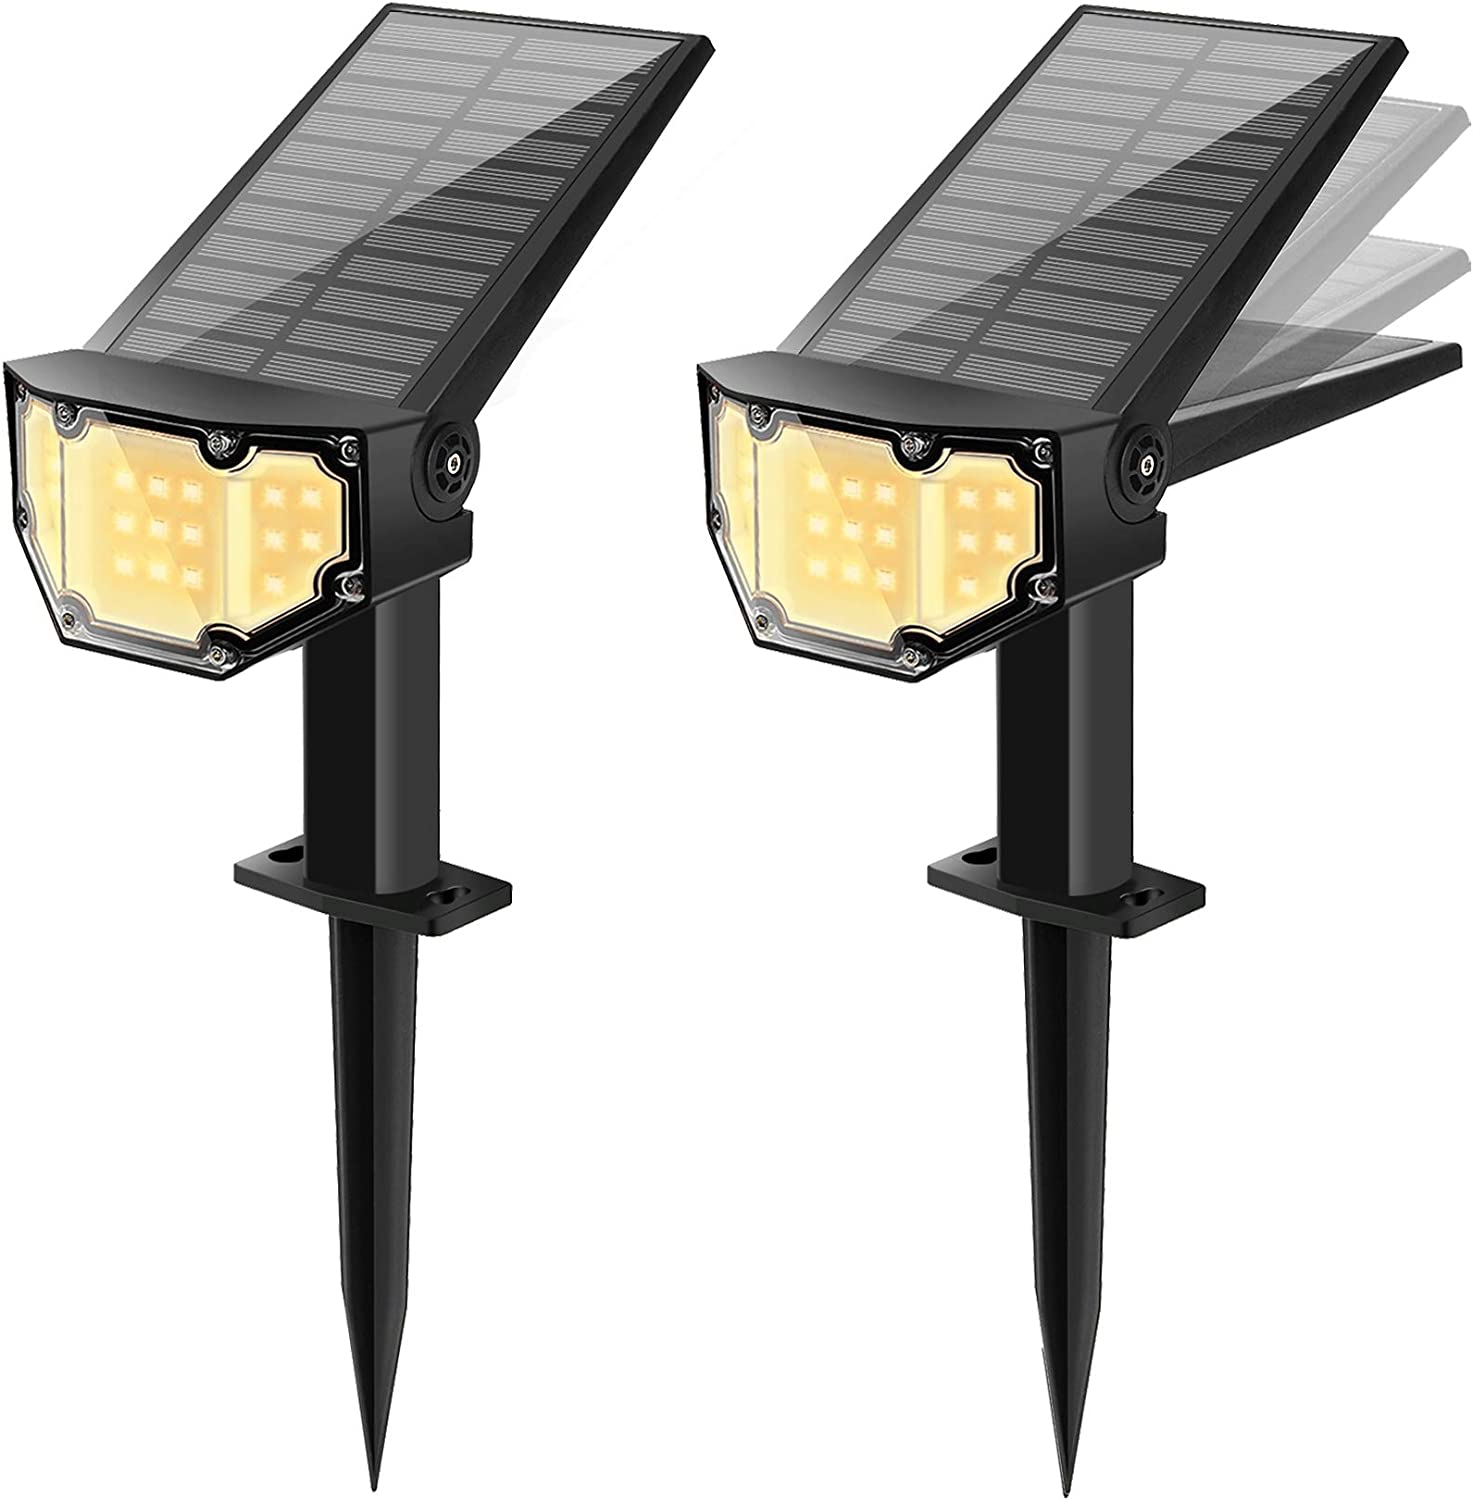 Otdair Solar Landscape Spotlights, 19 LED Solar Powered Lights Outdoor IP67 Pathway Lights Wireless, Bright Warm, 2 in 1 Wall Lights Yard Lights for Garden Driveway Porch Walkway Pool Patio 2Pcs